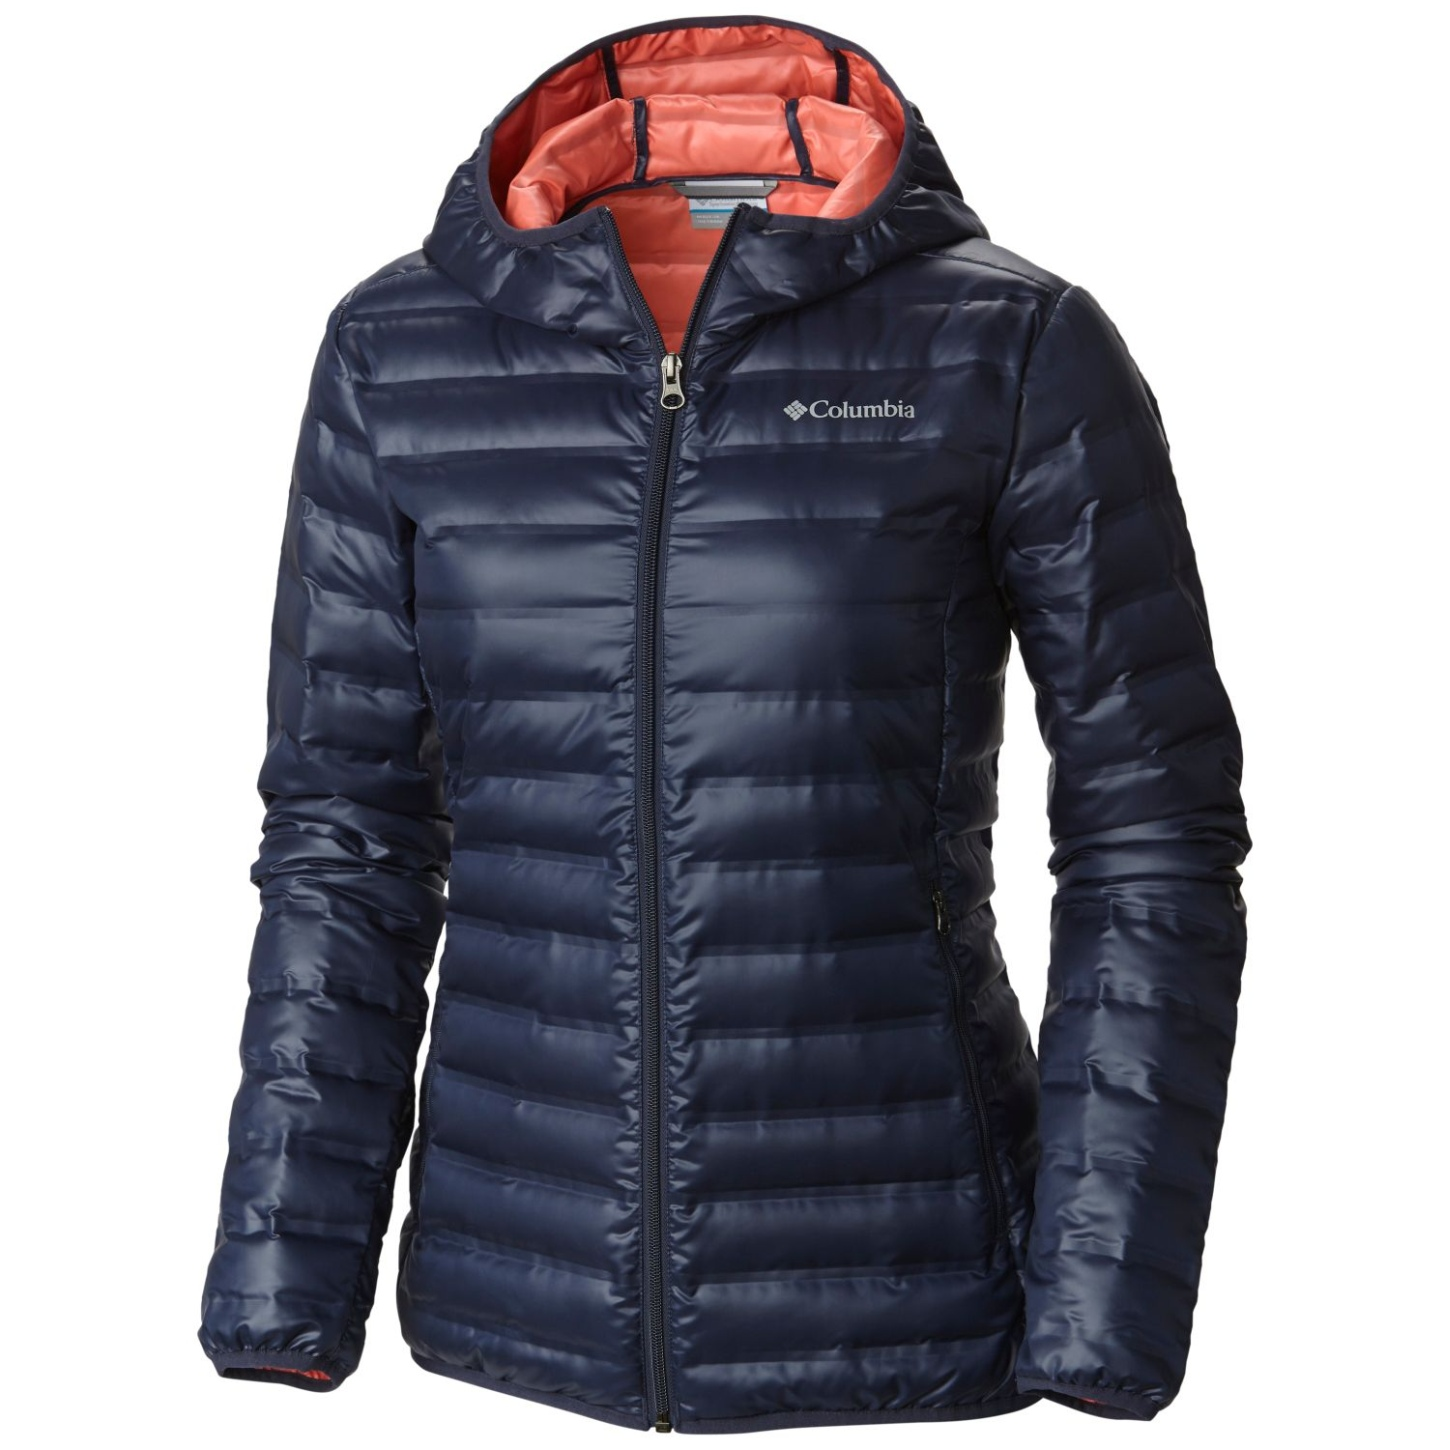 Columbia Flash Forward Daunenjacke mit Kapuze für Damen Nocturnal, Hot Coral-30